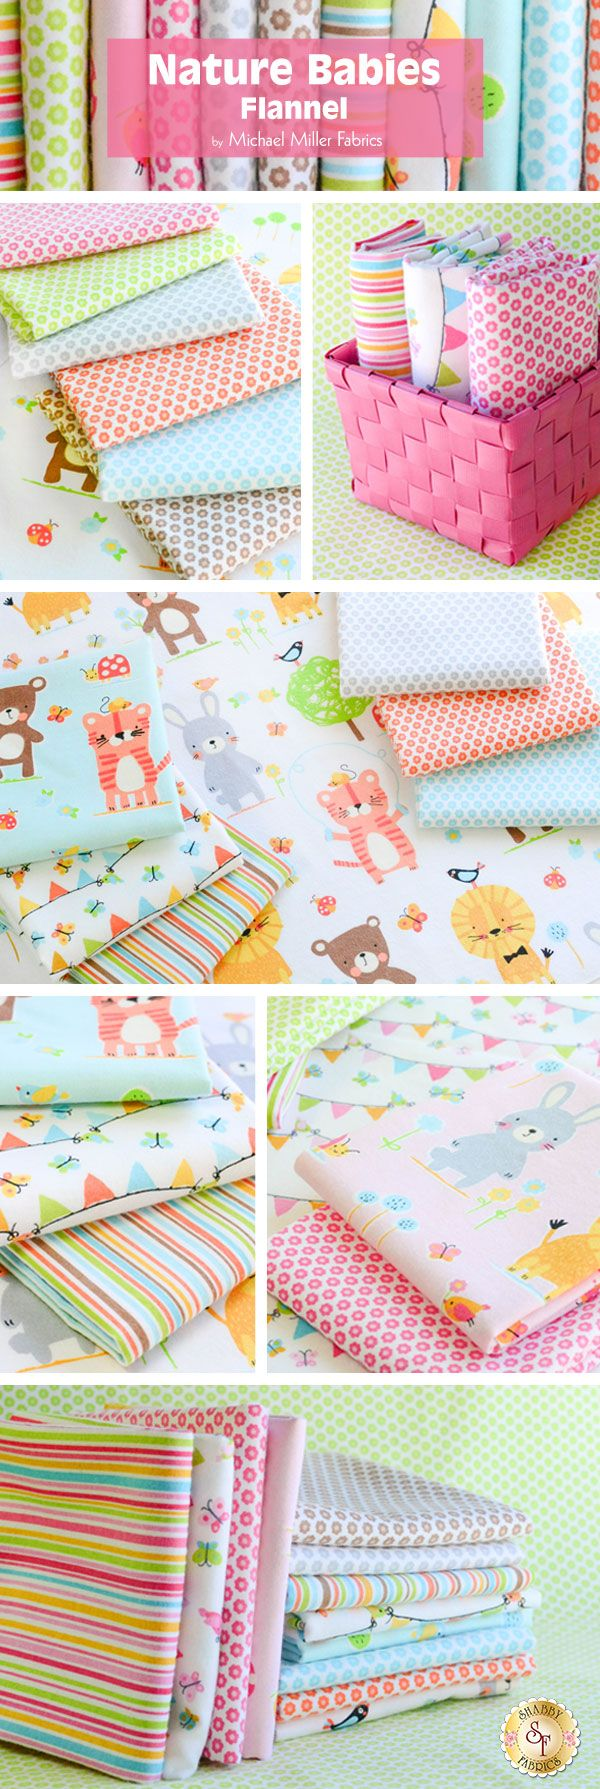 Nature Babies Flannel by Michael Miller Fabrics is a modern and adorable fabric collection available at Shabby Fabrics